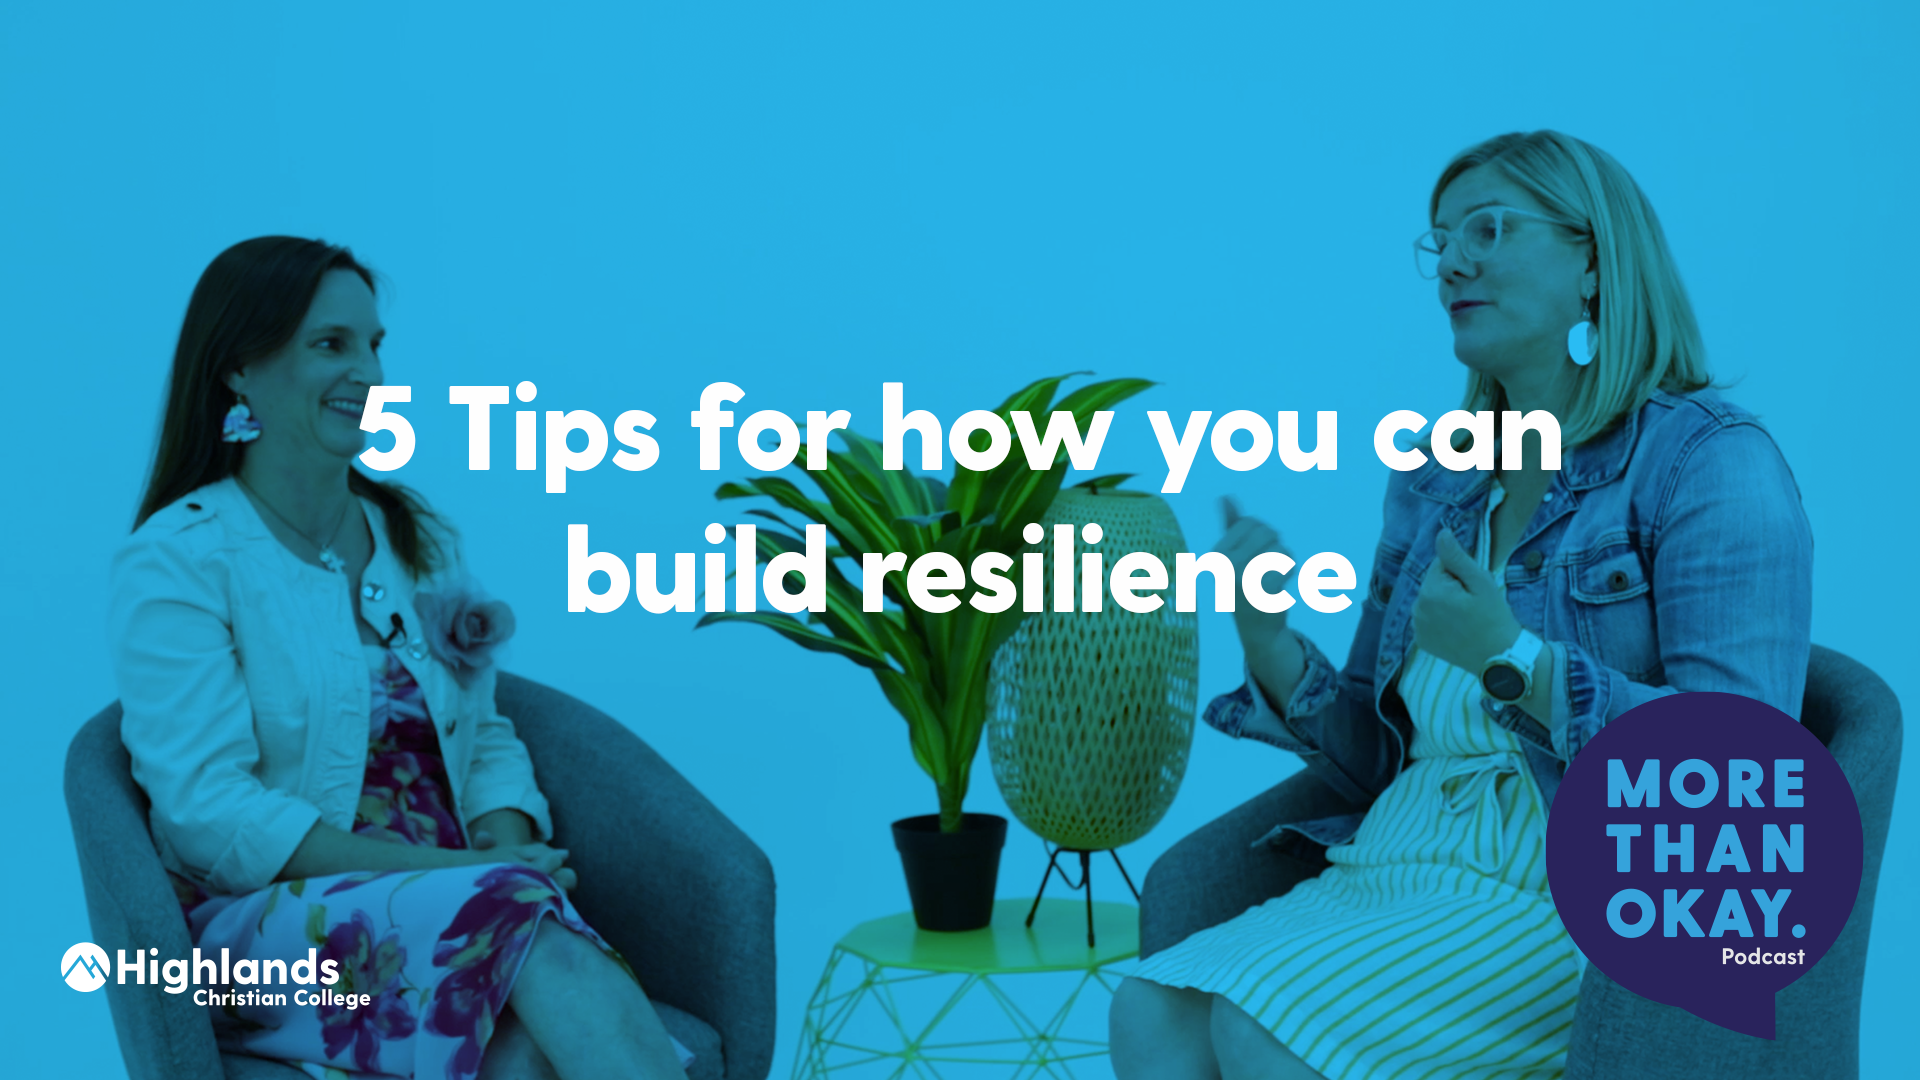 5 Tips for building resilience